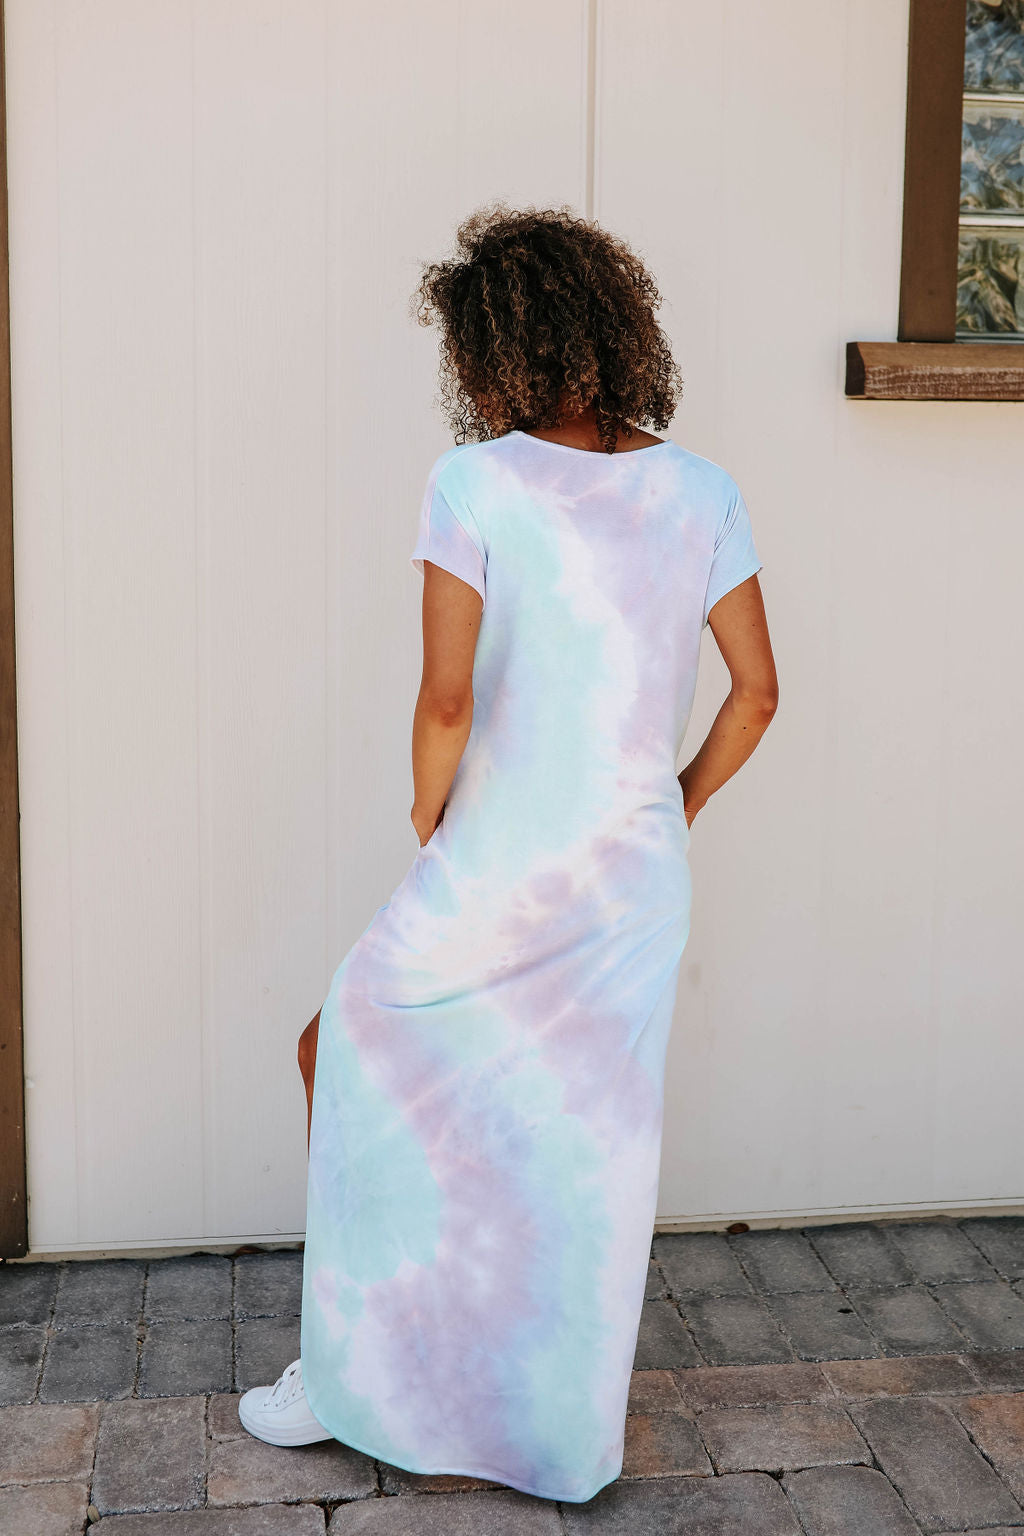 THE JAYLEE TIE DYE MAXI JERSEY DRESS IN PURPLE/GREEN MIX